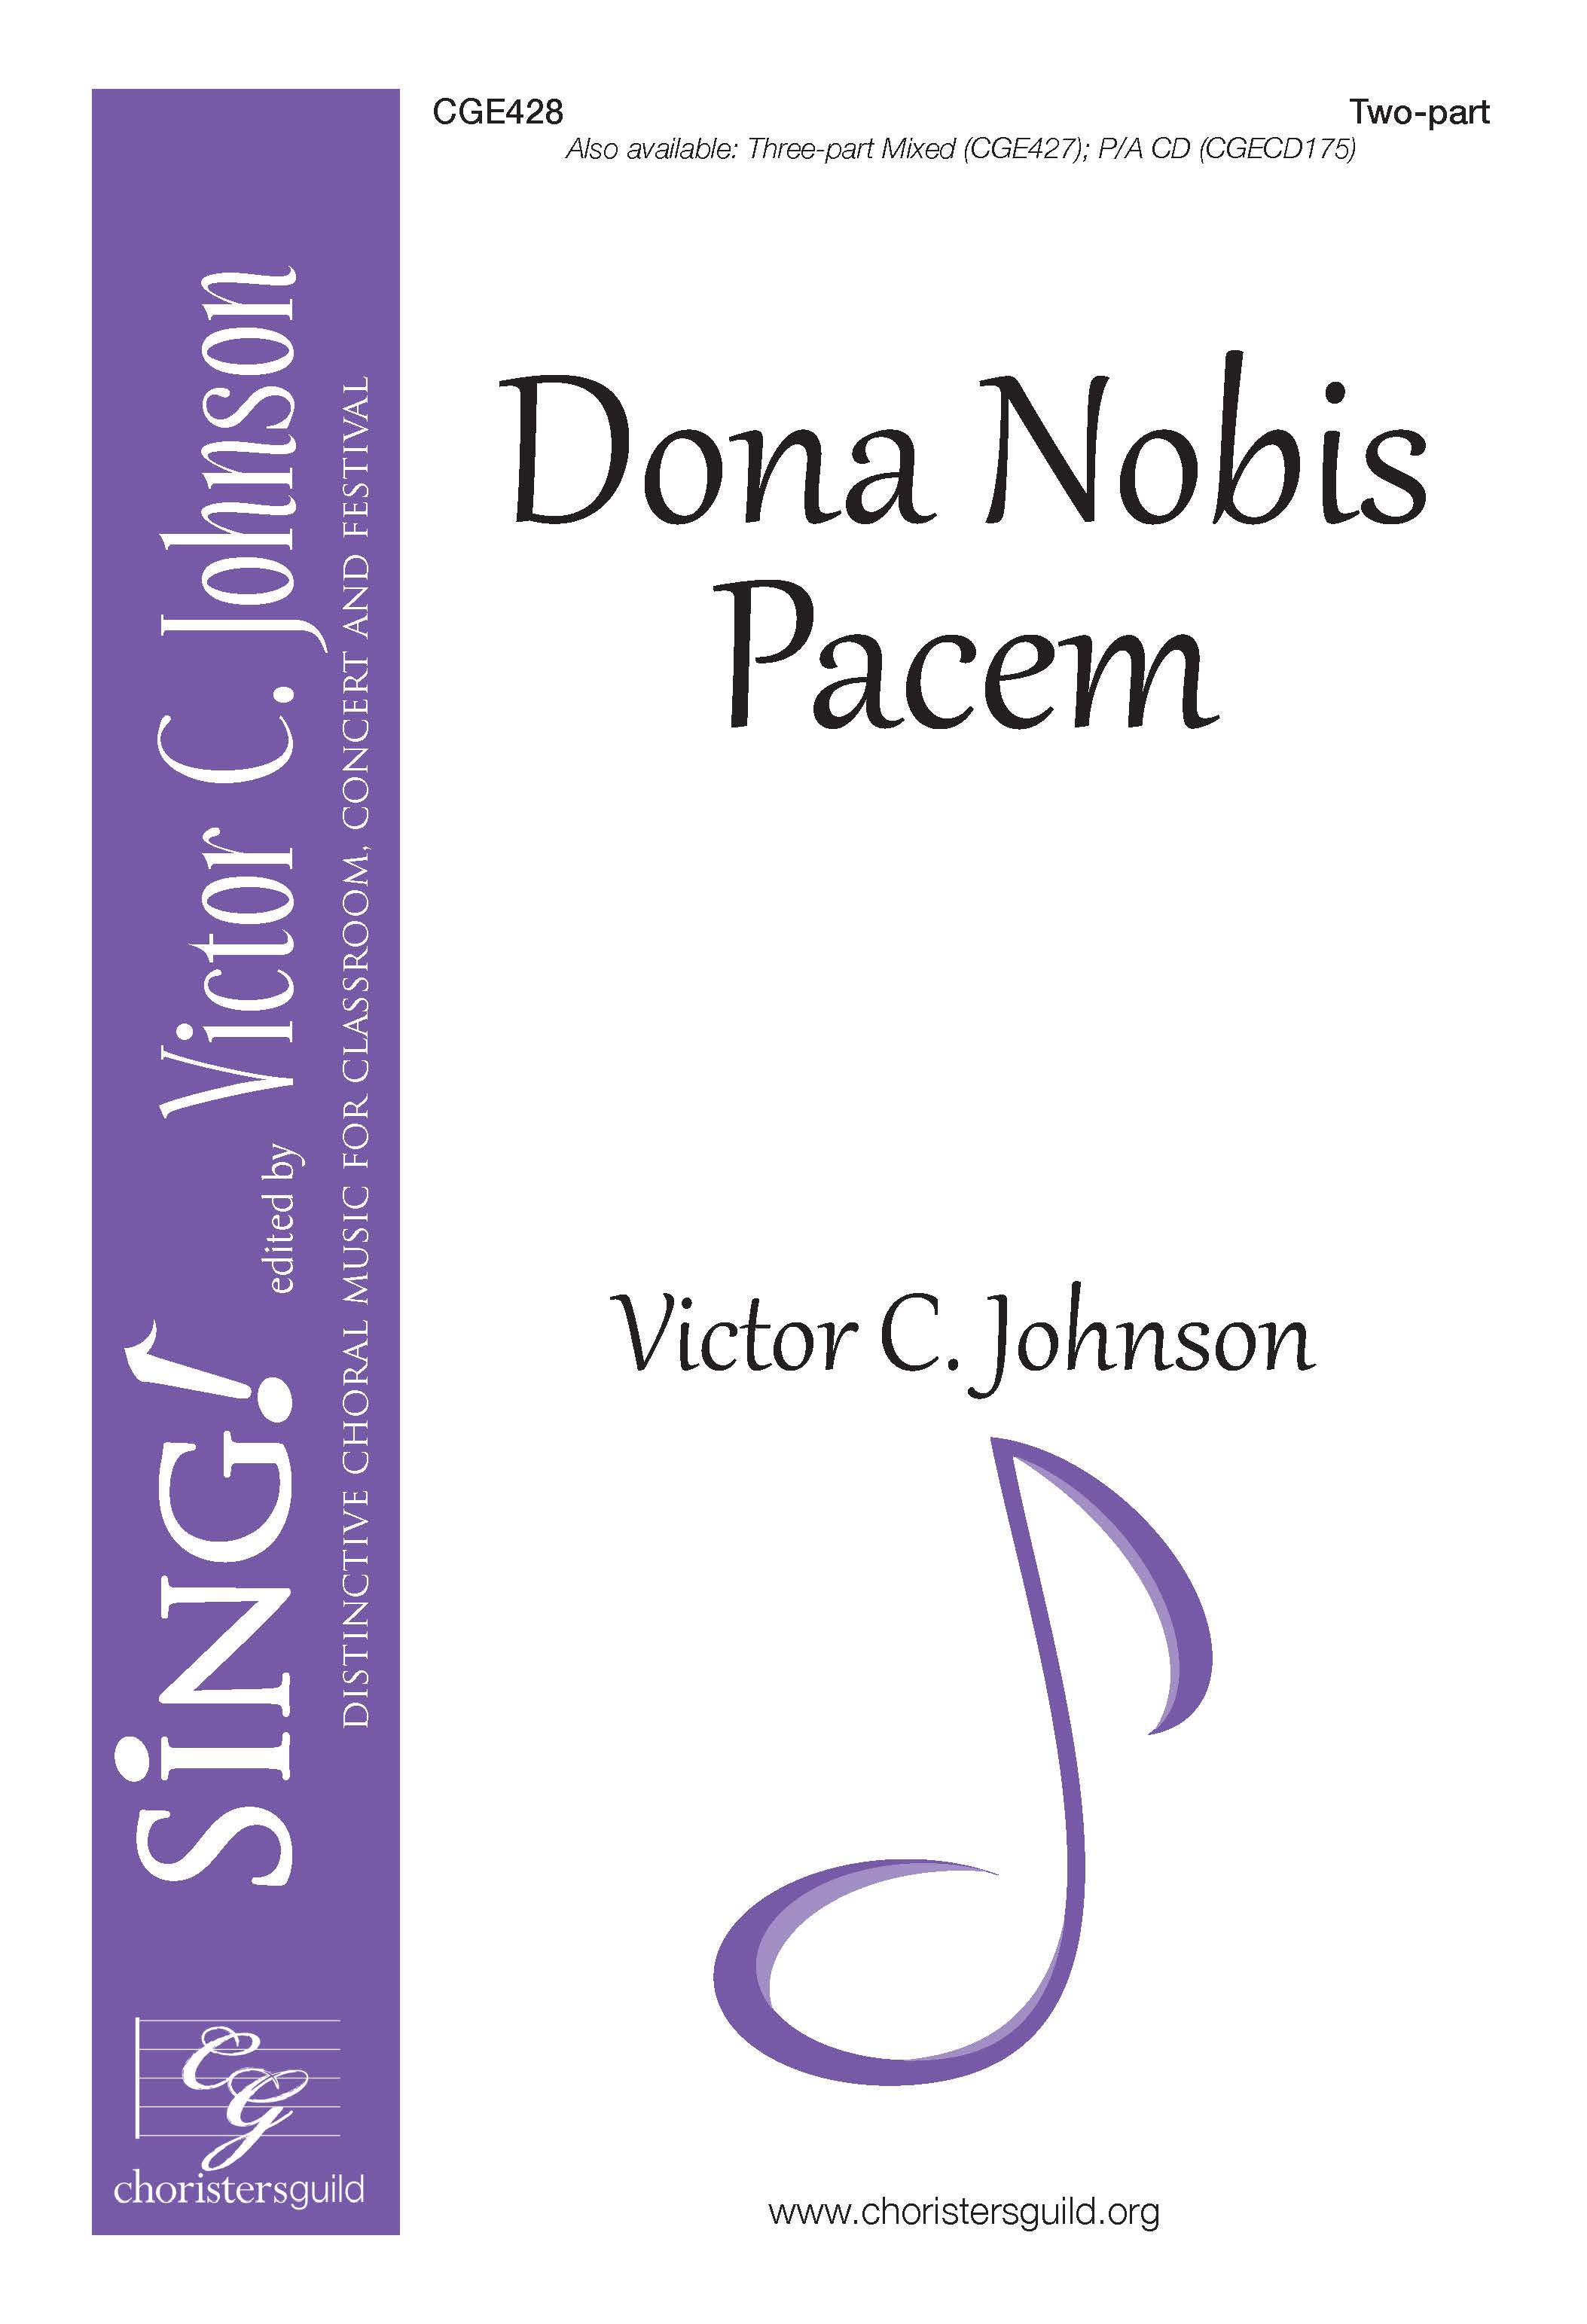 Dona Nobis Pacem - Two-part